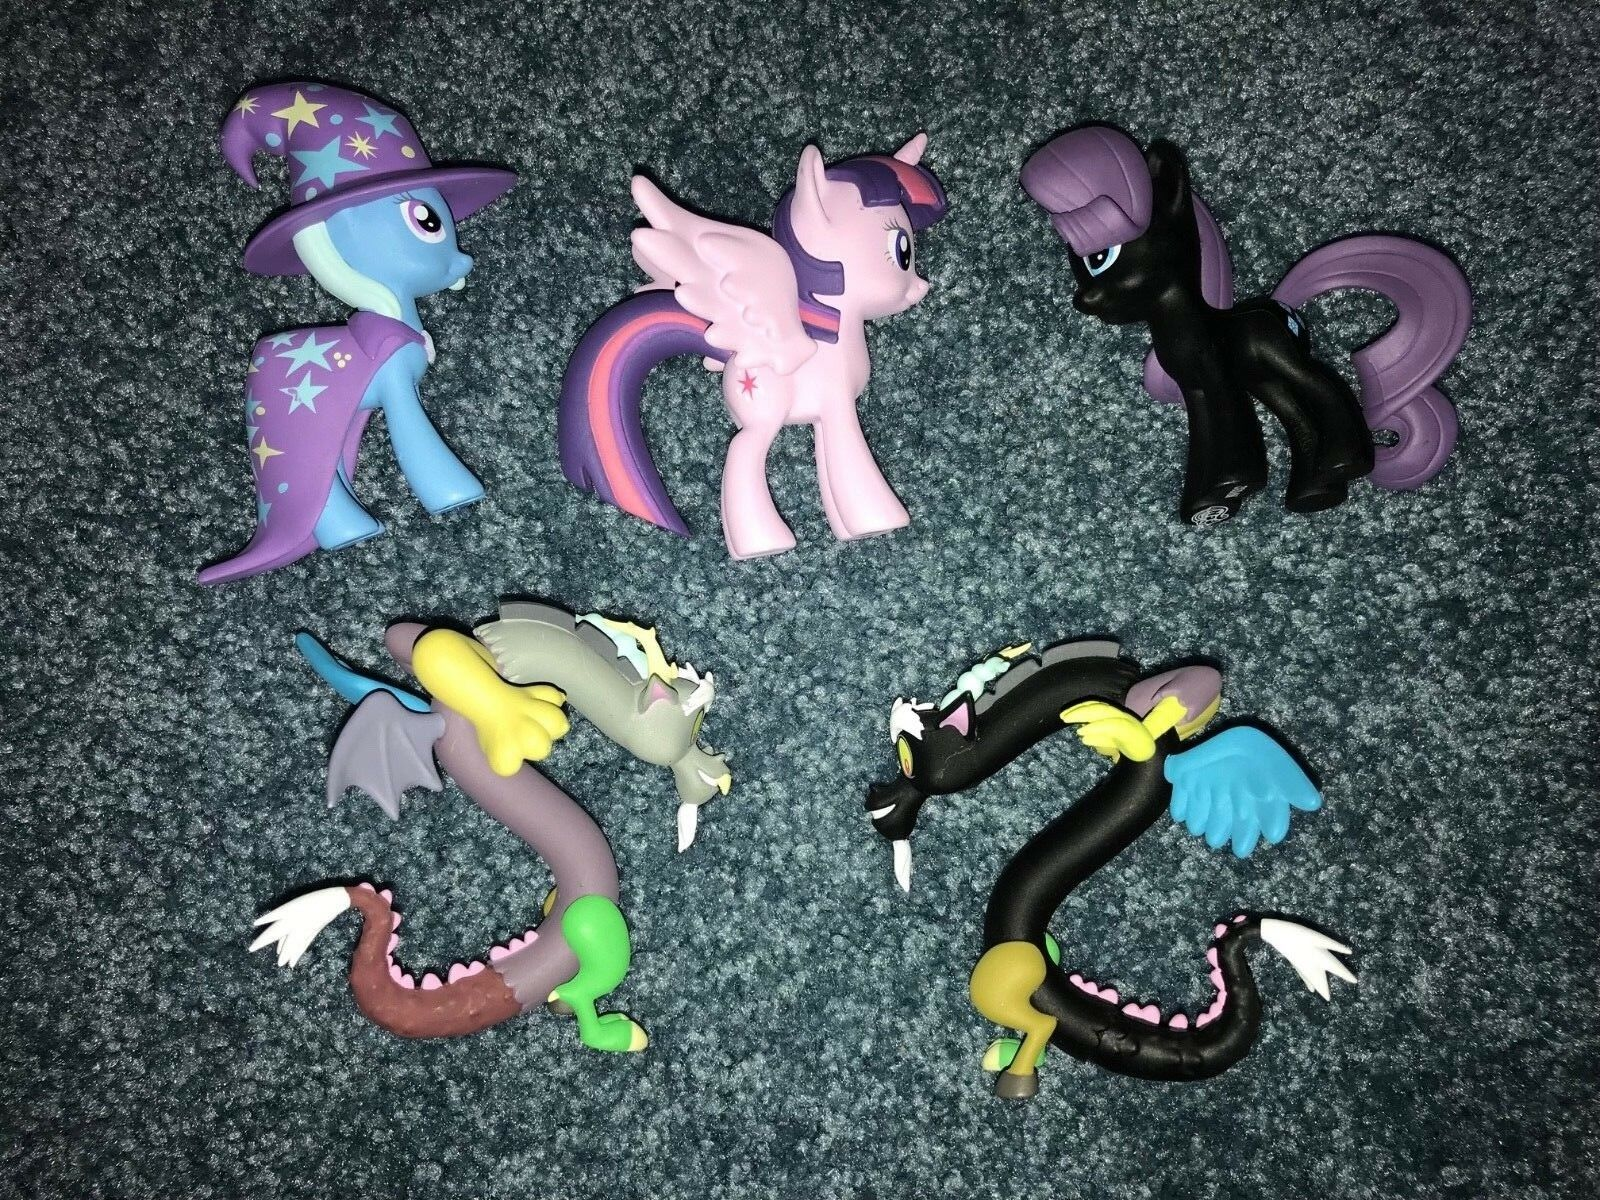 Lot of 5 Opened but NEW My Little Pony Funko Mystery Minis figures from Series 2